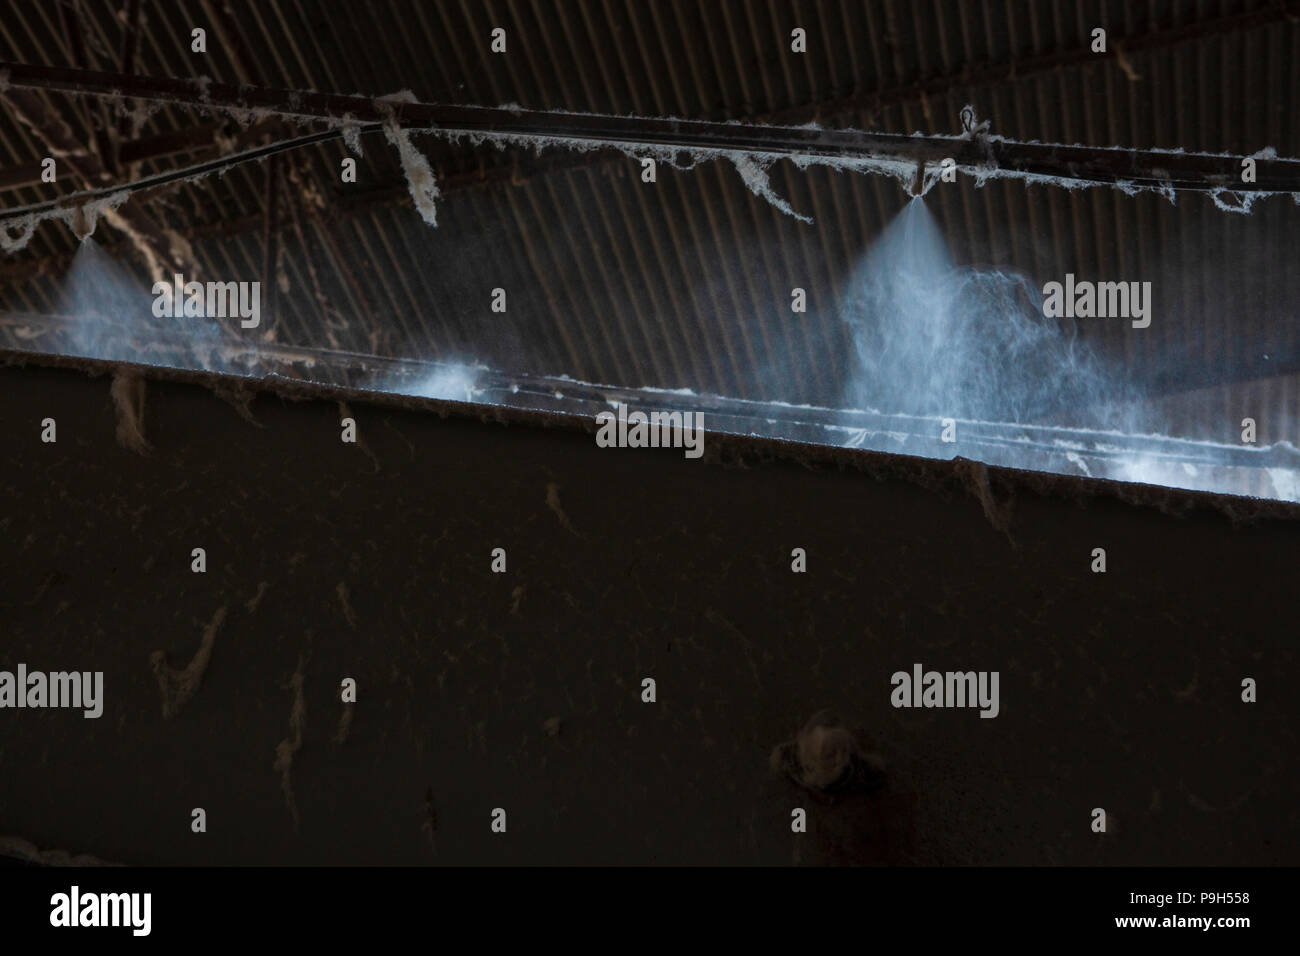 Organic cotton being dampened by water being sprayed at a cotton ginners in Madhya Pradesh, India. Stock Photo